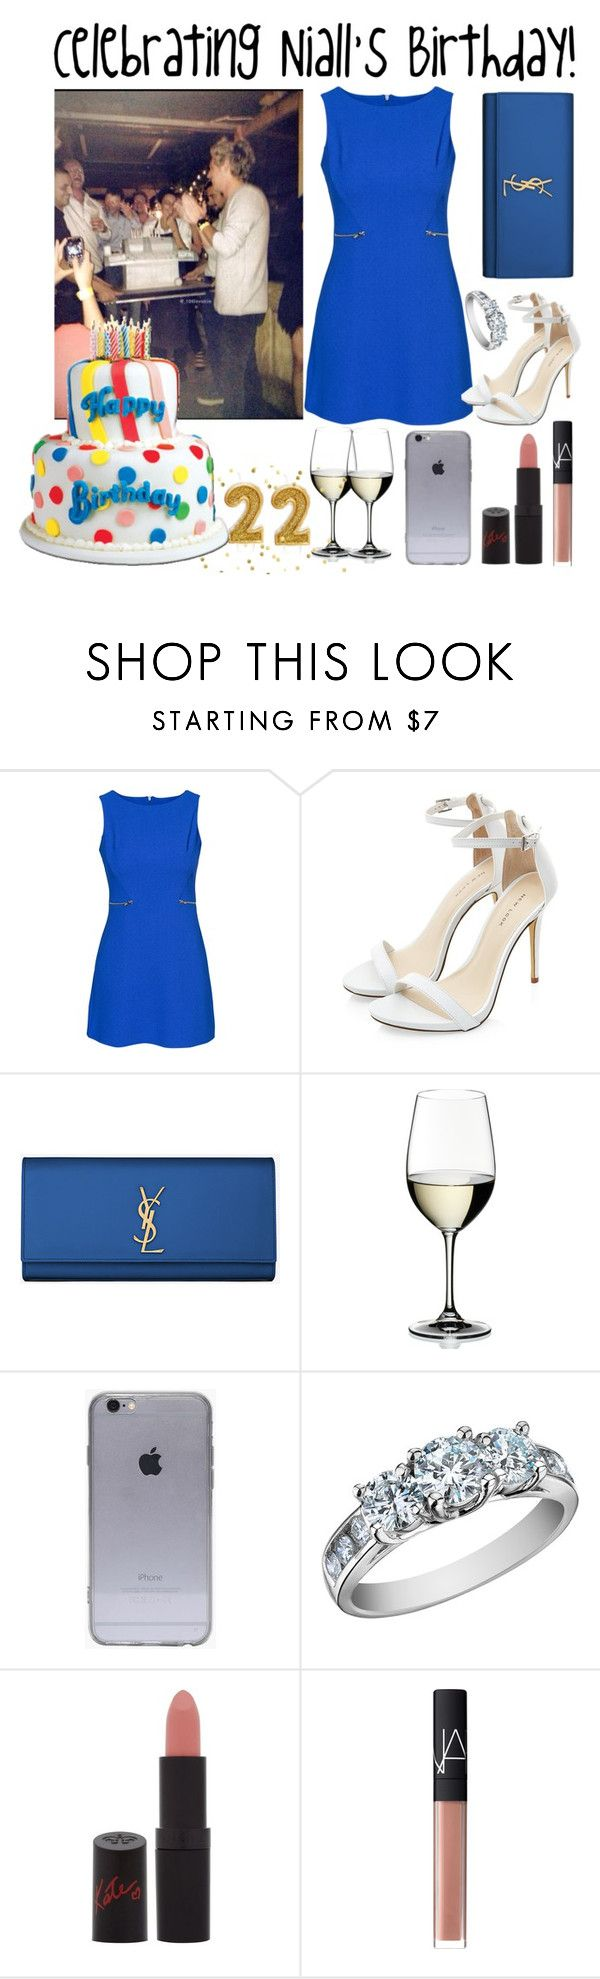 """Celebrating Niall's Birthday!"" by directionermixer01 ❤ liked on Polyvore featuring New Look, Yves Saint Laurent, Riedel, Rimmel and NARS Cosmetics"